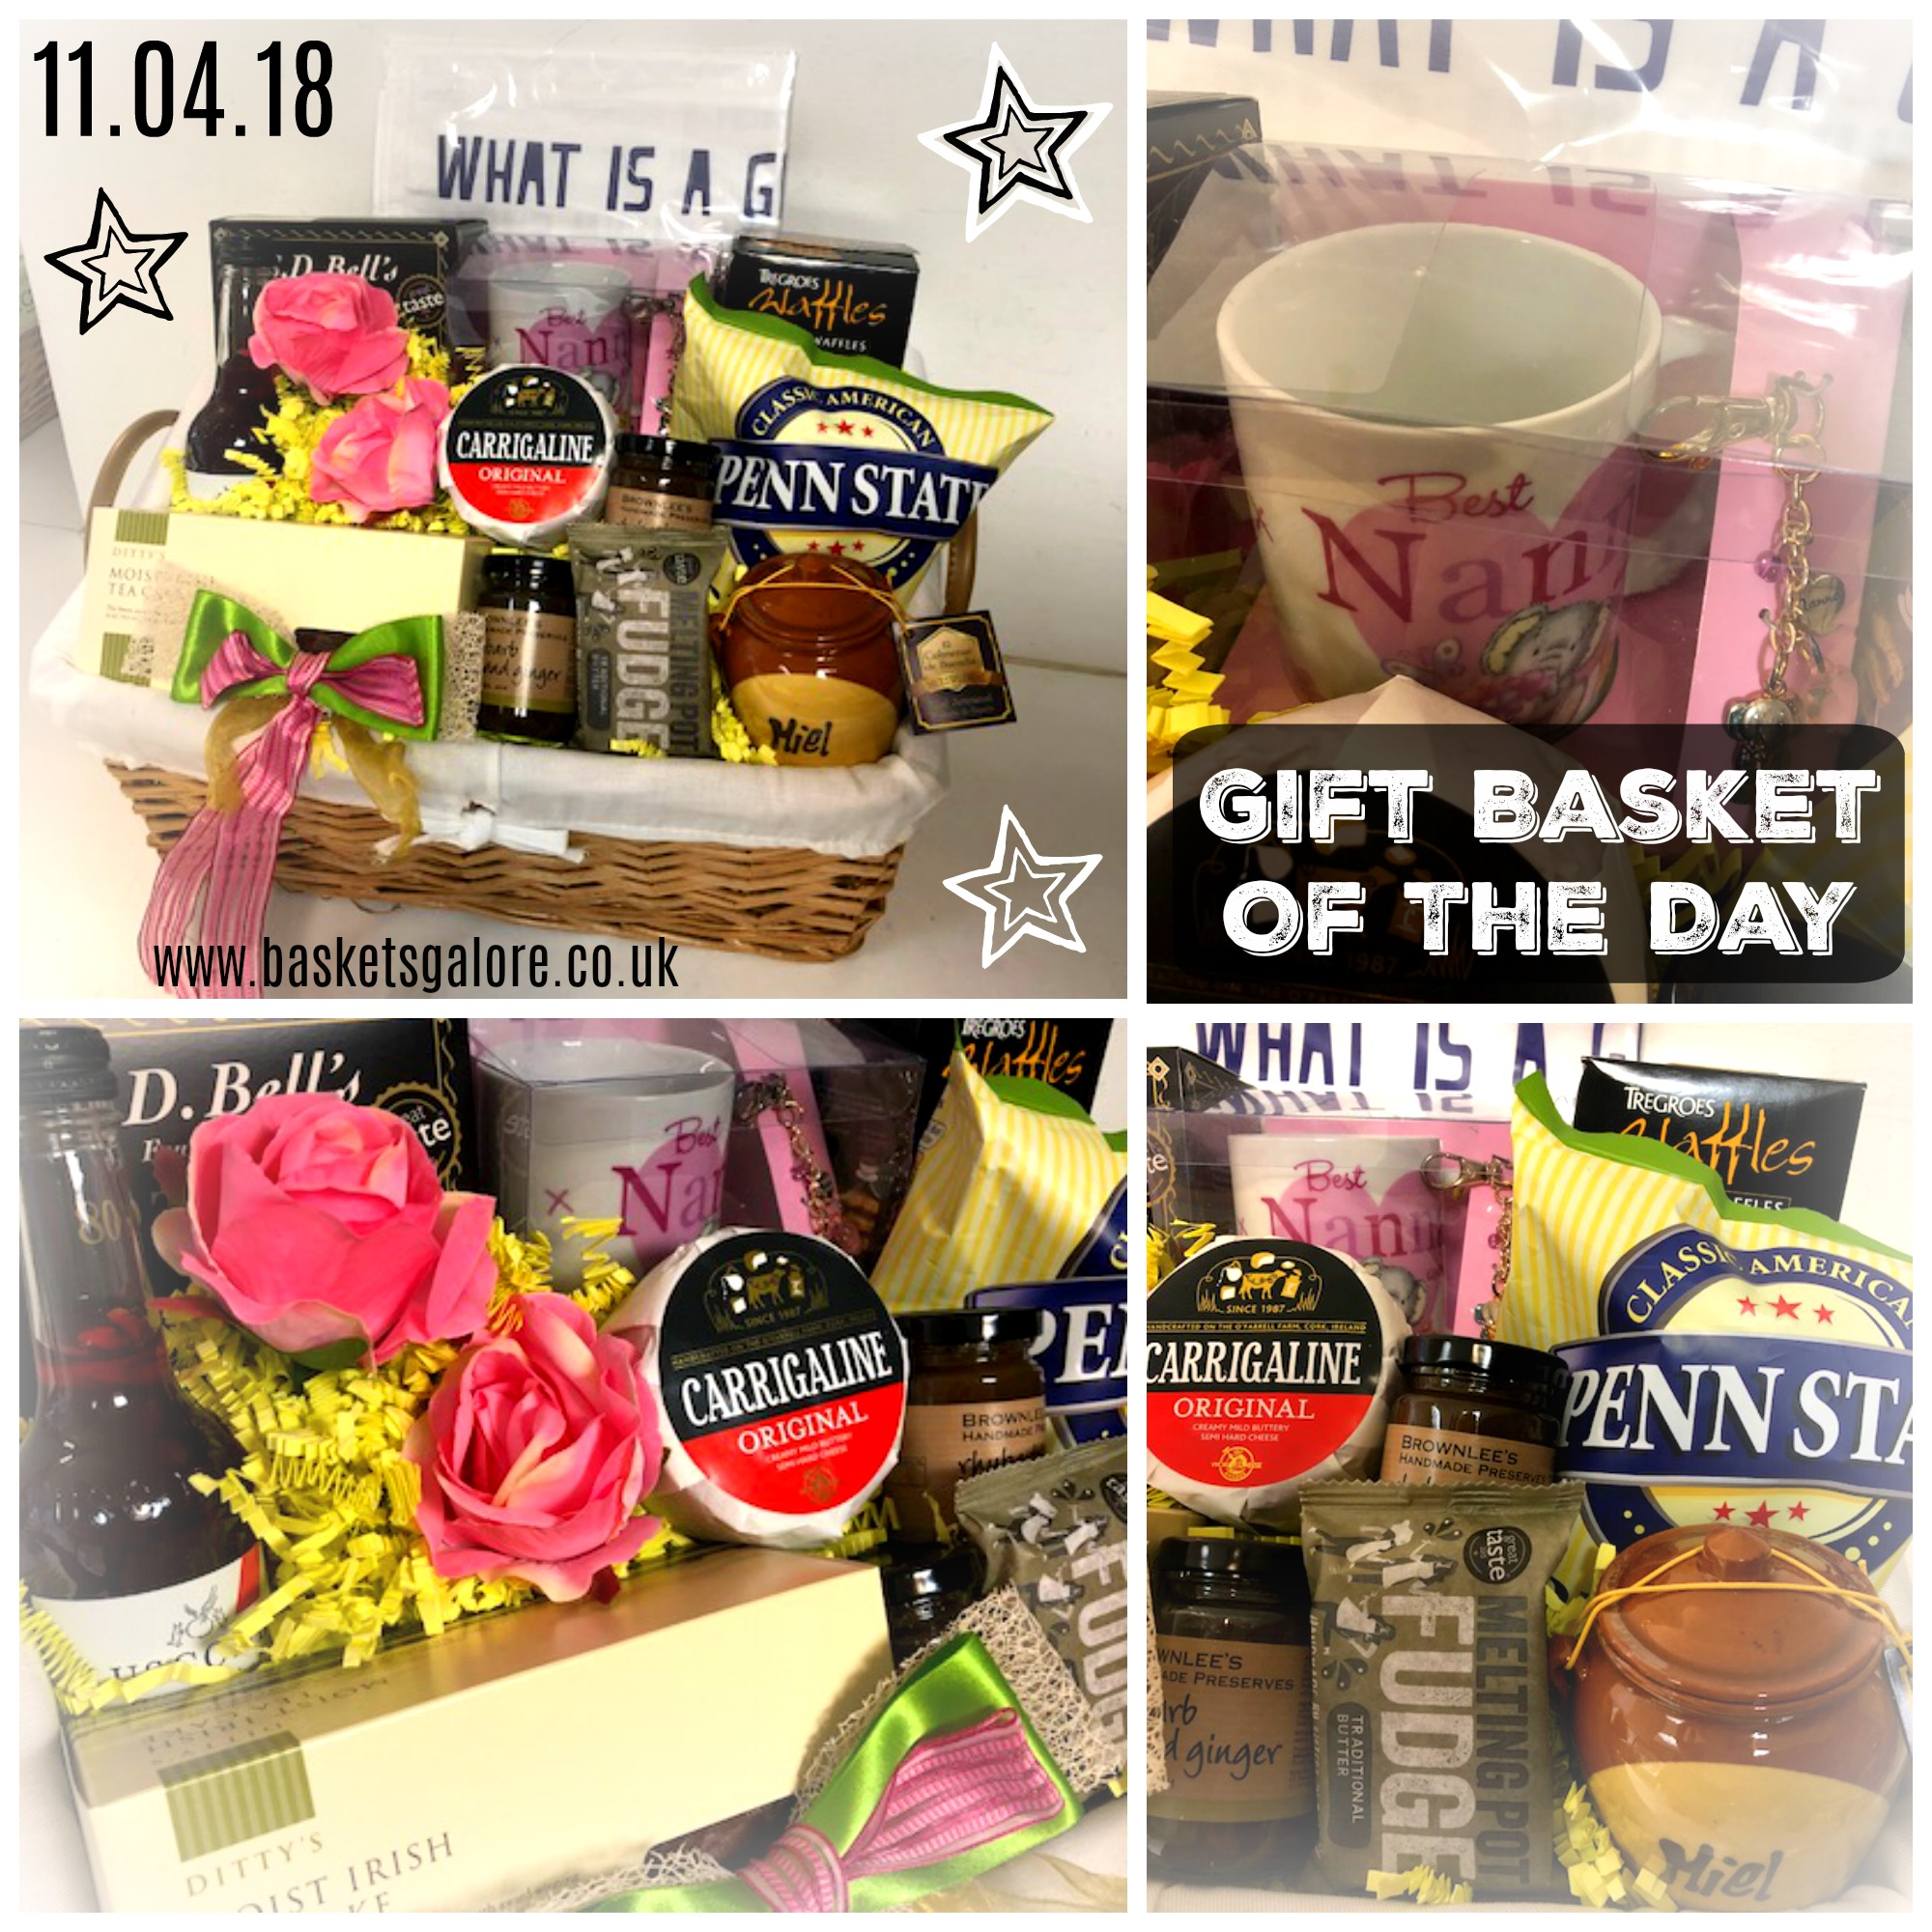 Baskets Galore's Customer Gifts – Gift Basket of the Day 11.04.18